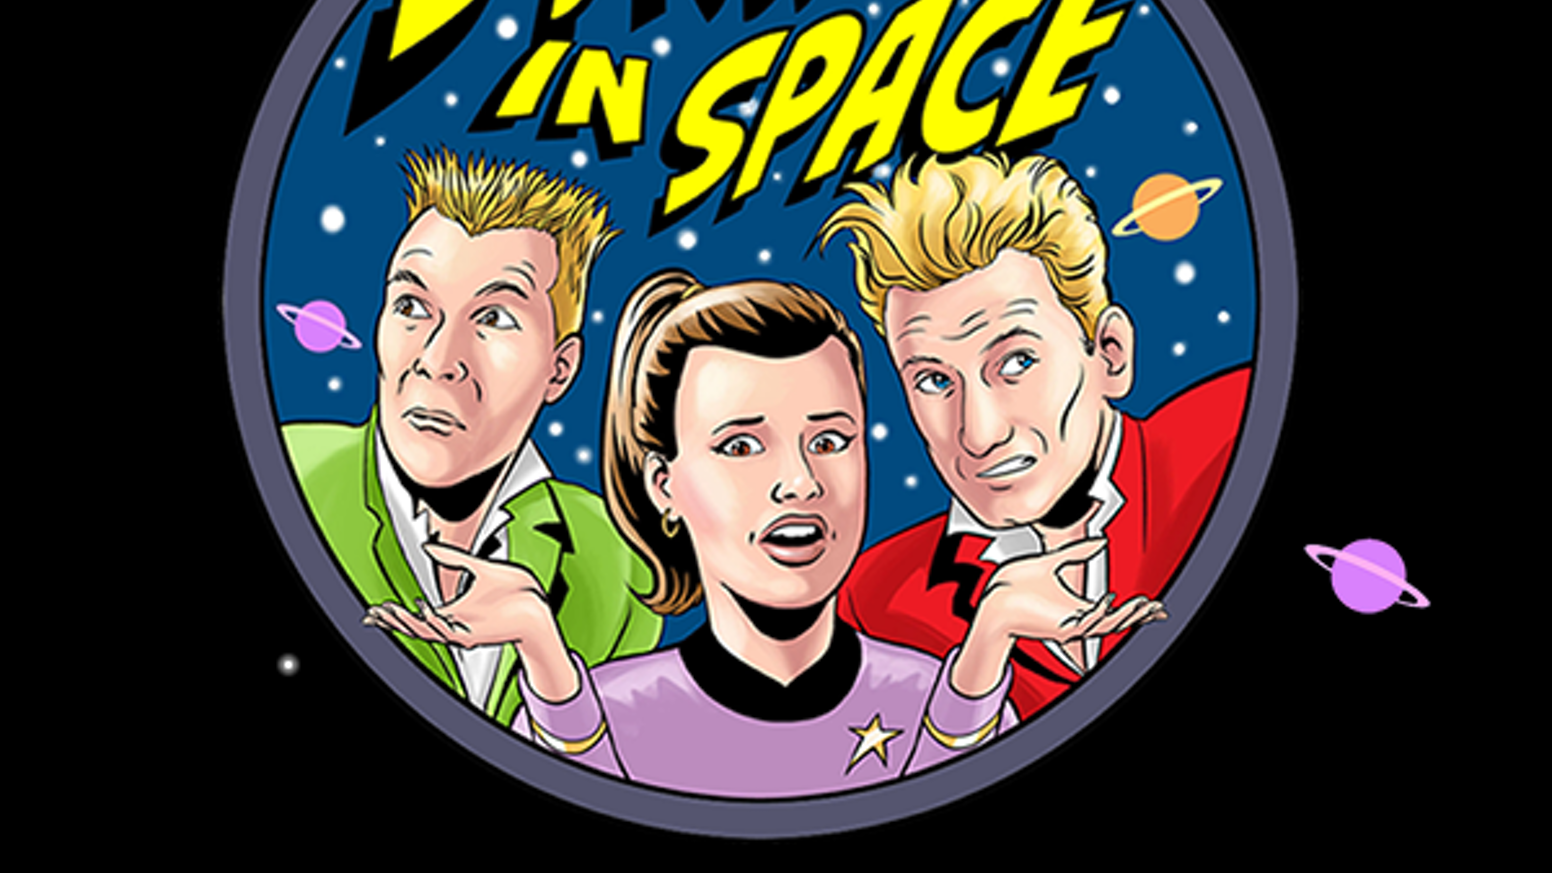 Comedy Sci-Fi audio from Trev & Simon, Sophie Aldred & Clare Eden with Rufus Hound,Doon Mackichan & Barnaby Edwards. For kids aged 8 to 80...